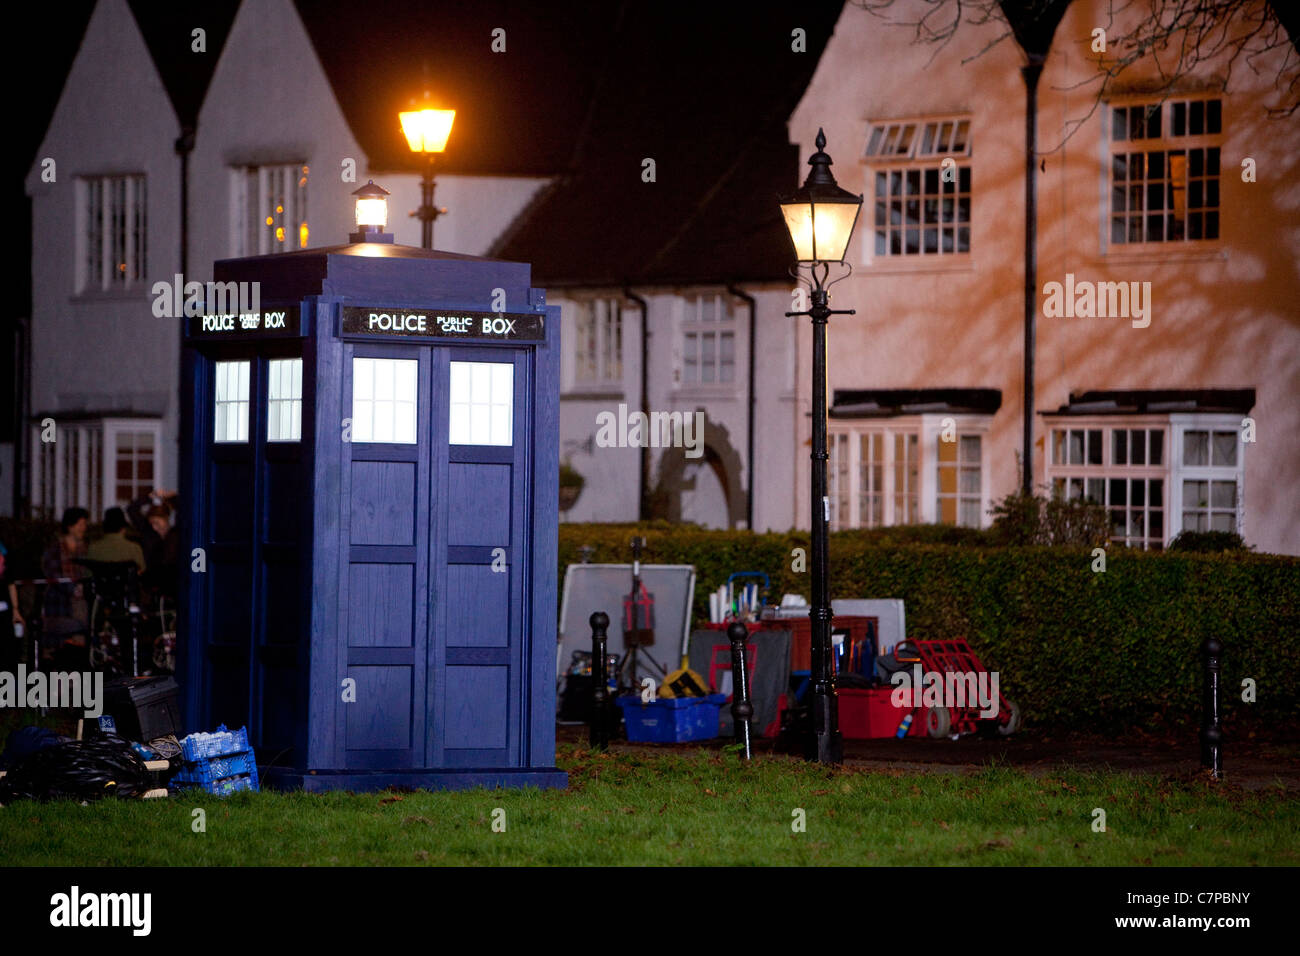 Doctor Who Christmas special filming underway at Y Groes, Rhiwbina Cardiff. - Stock Image